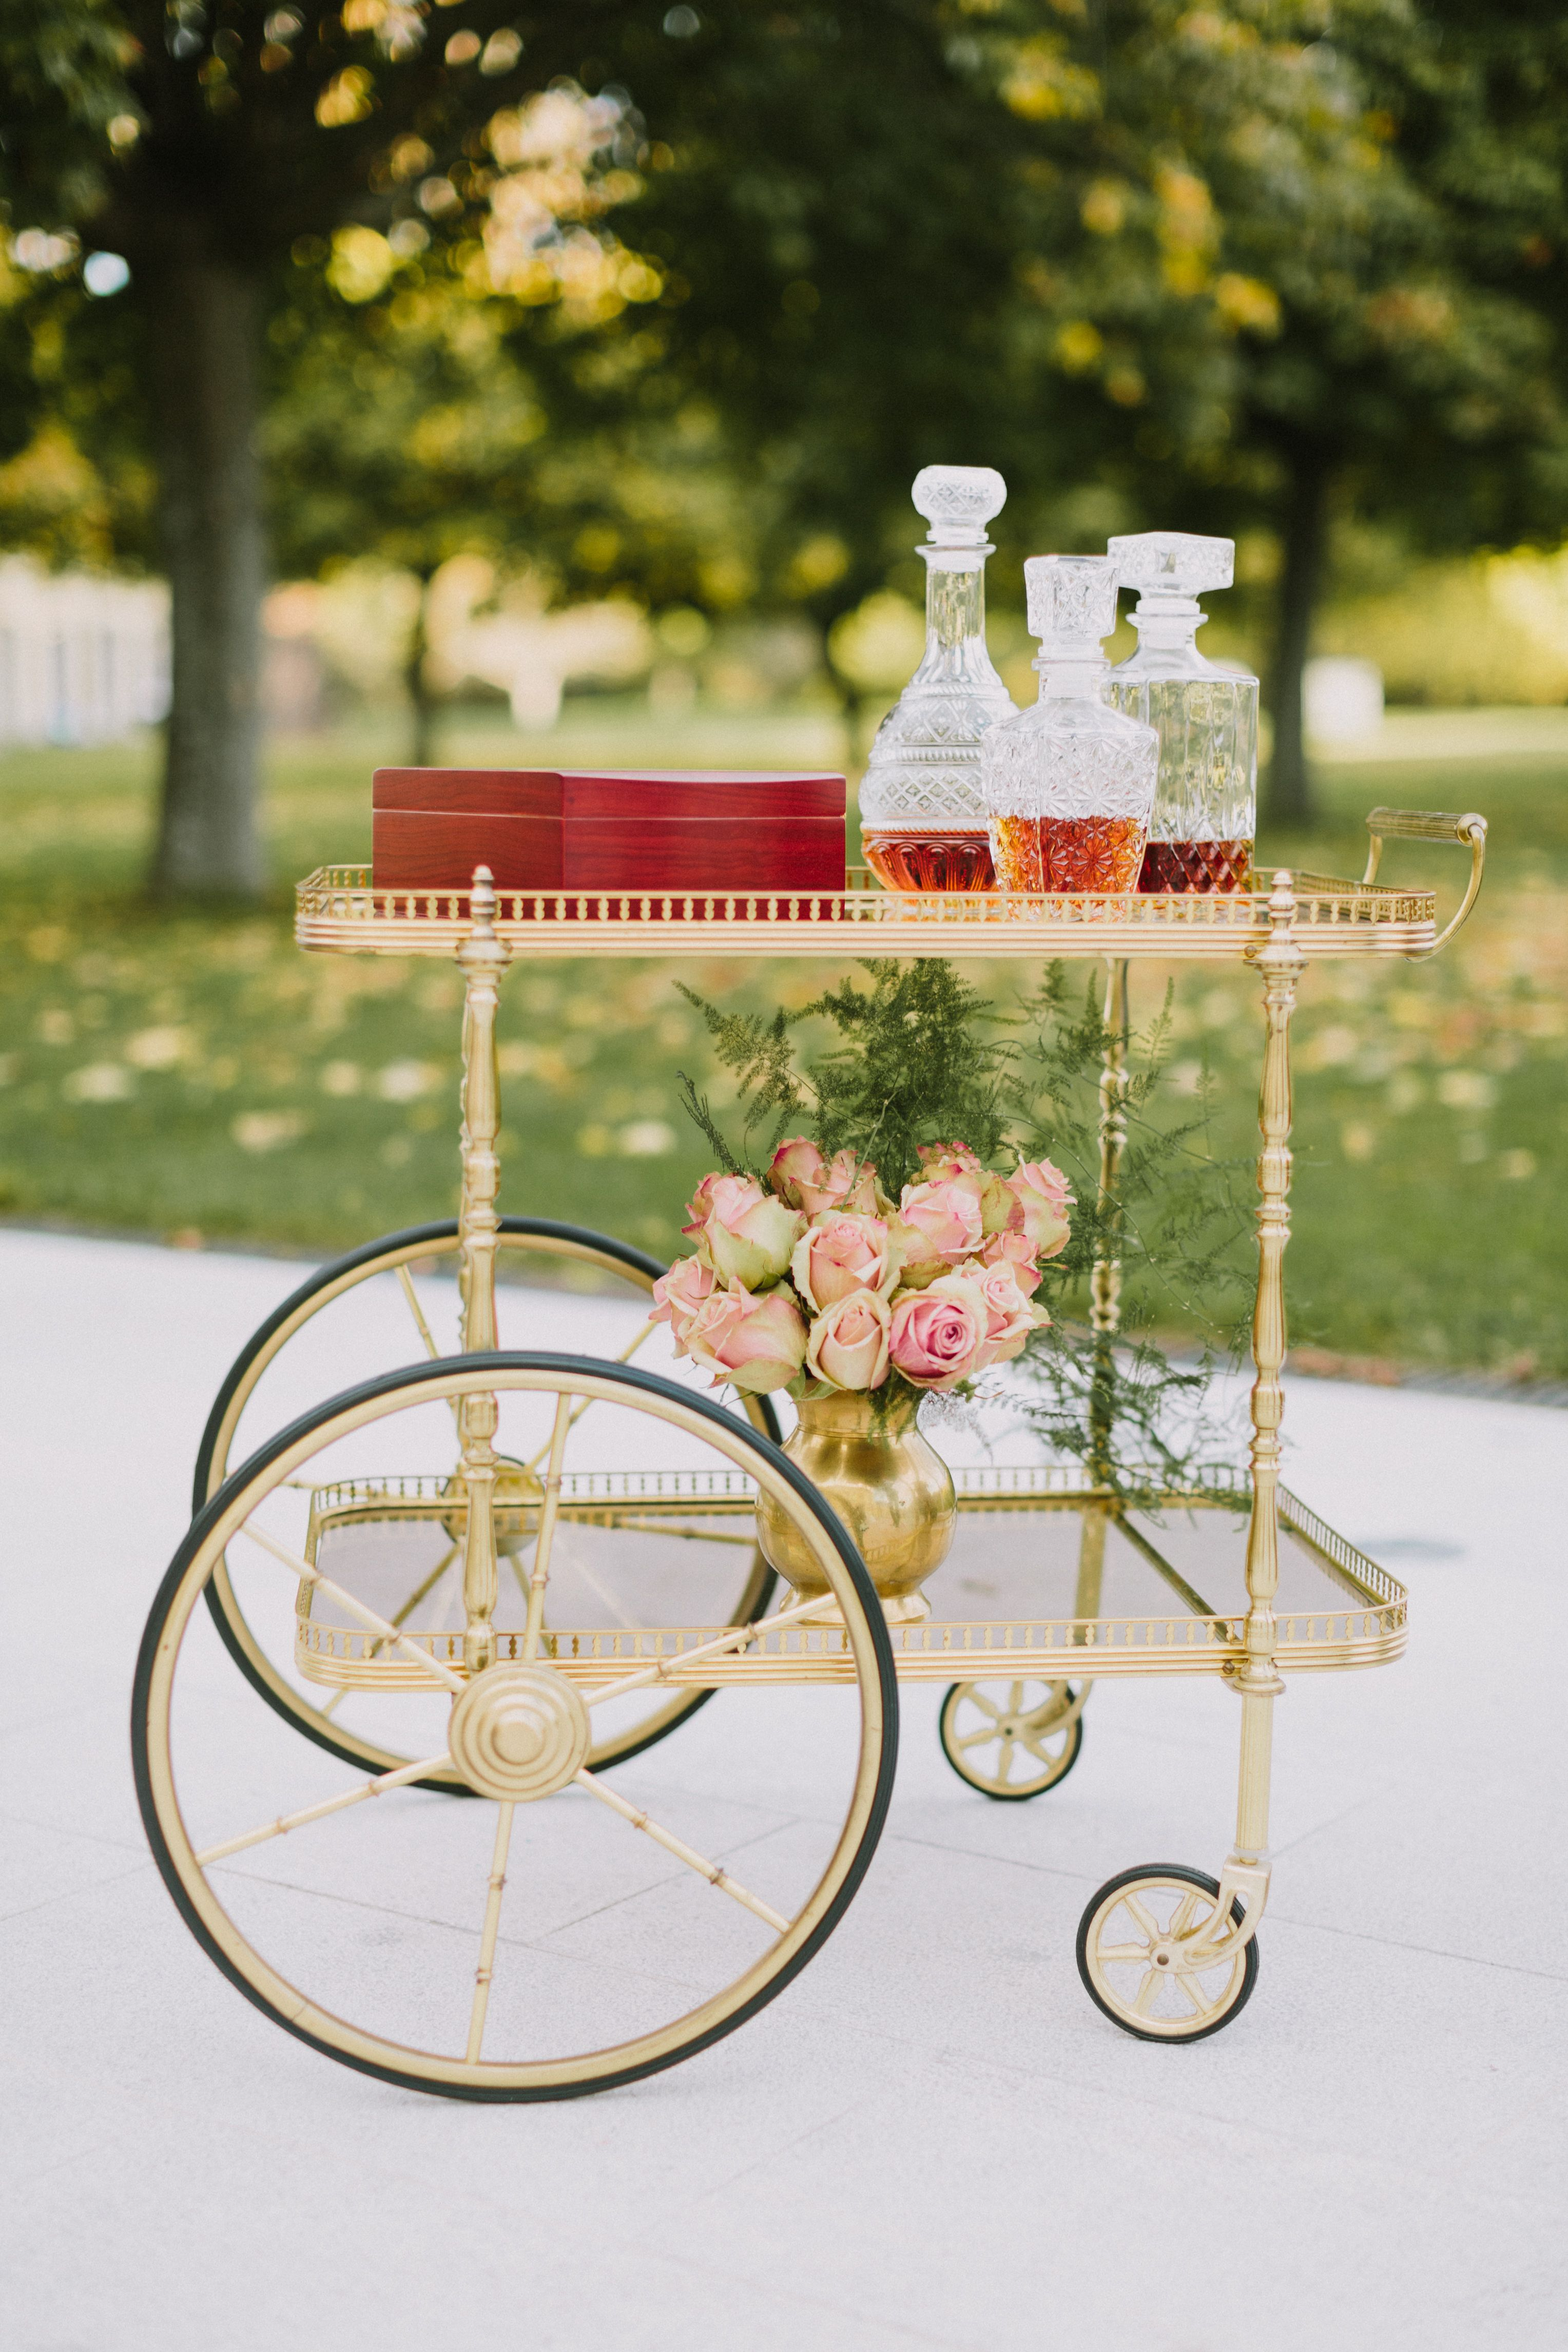 20 Bar Carts That'll Transform Your Wedding's Cocktail